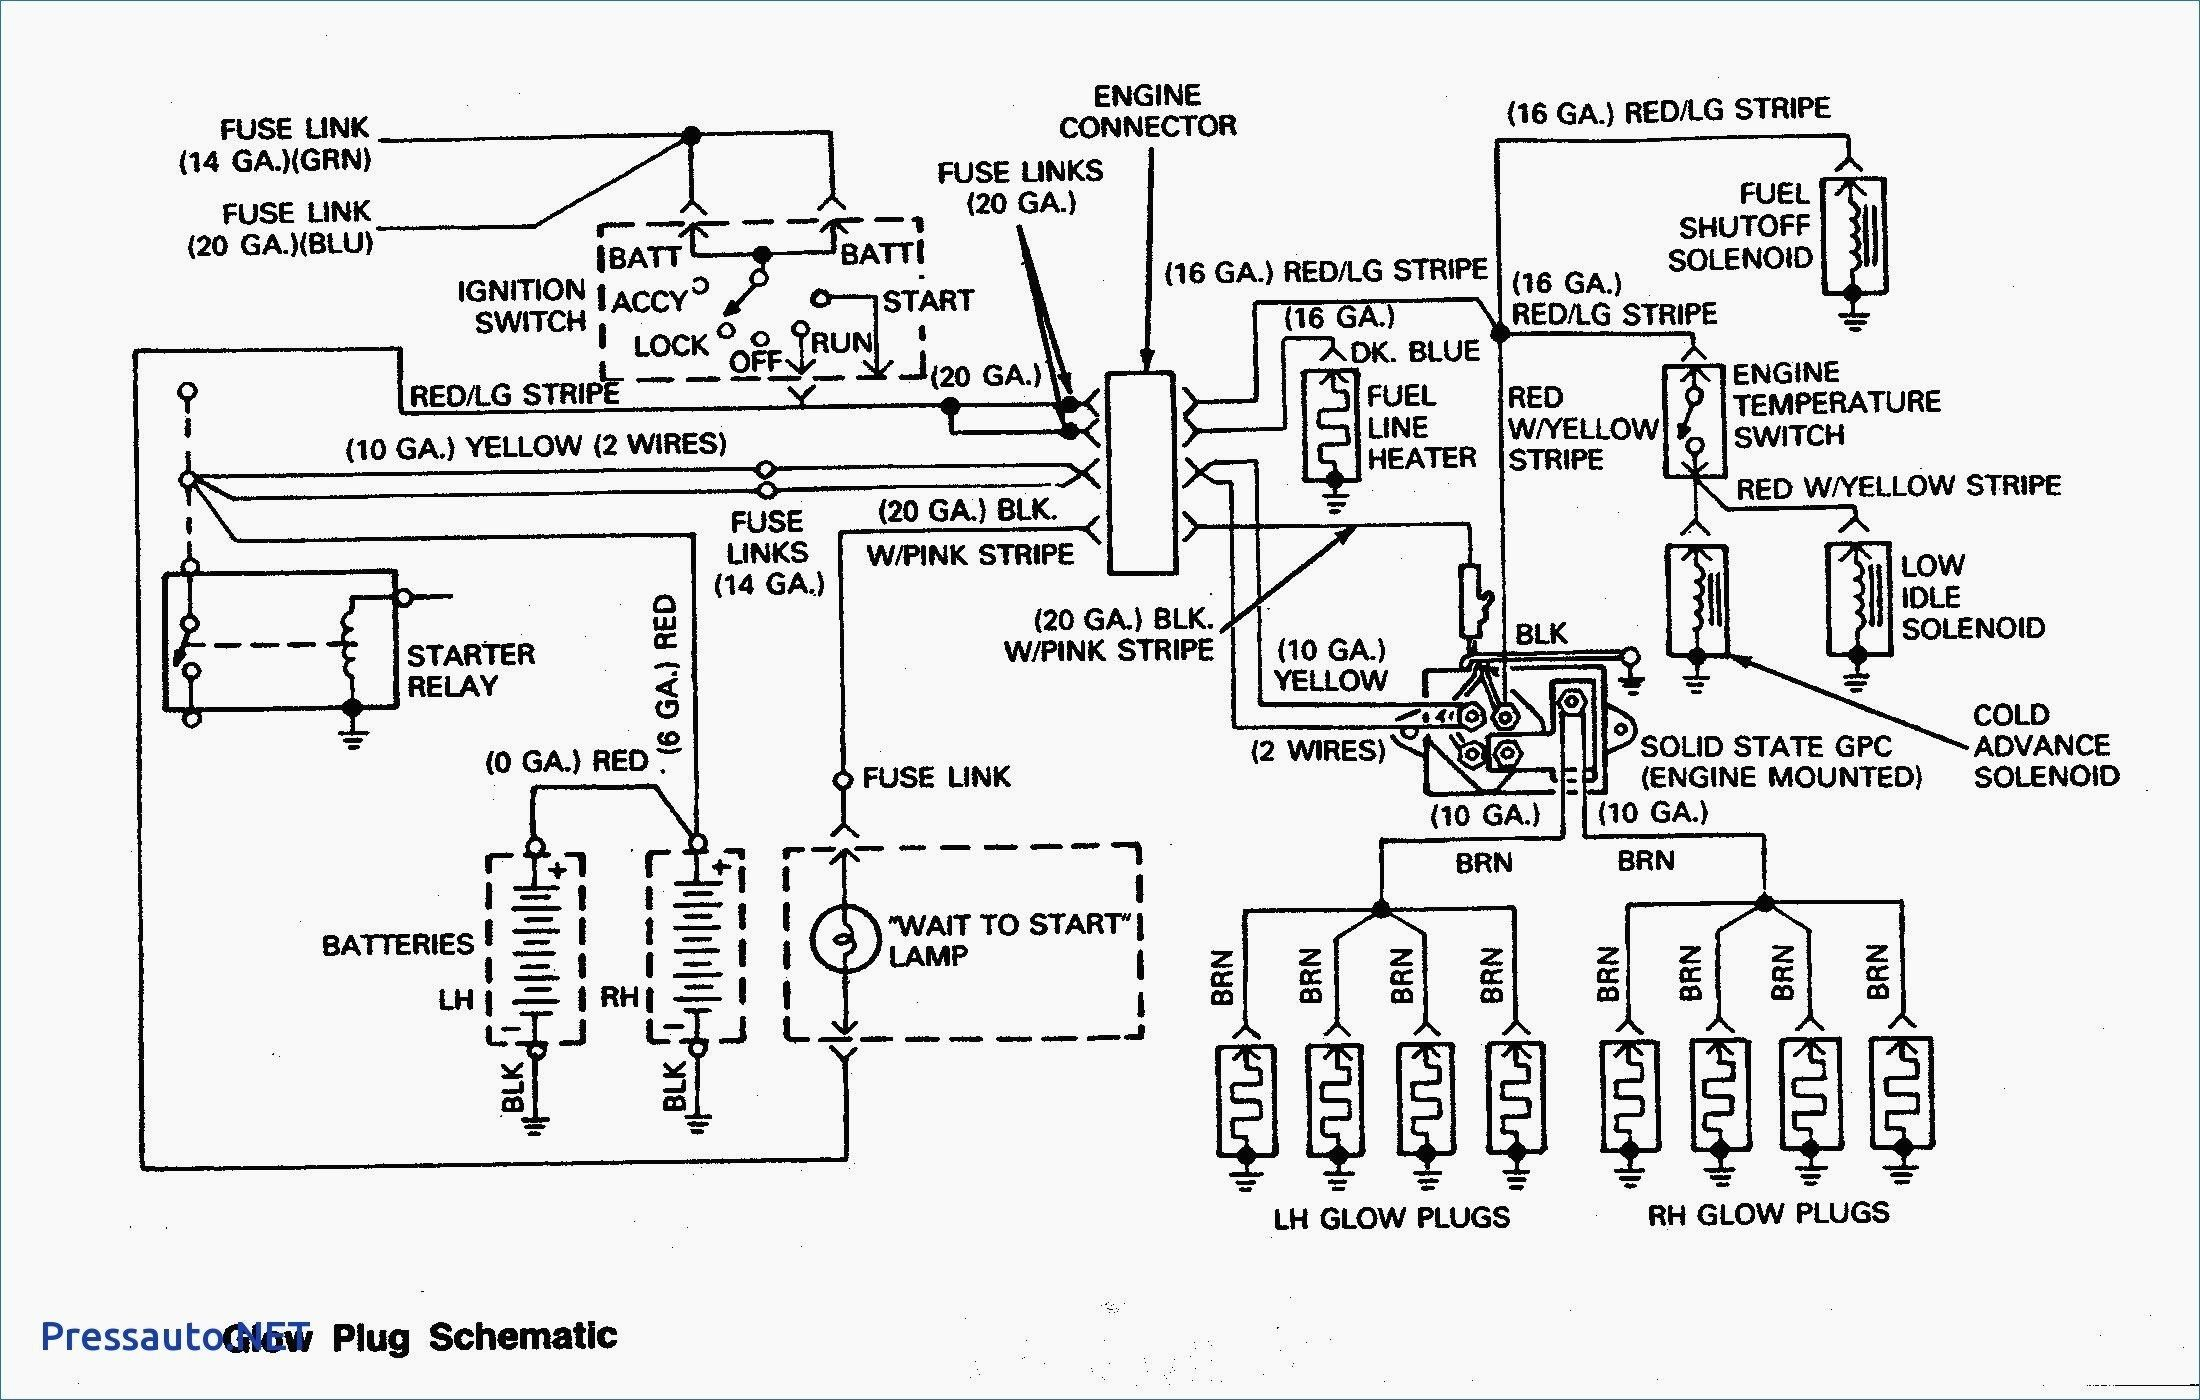 hight resolution of 6 duramax wiring schematic schematic diagram database engine diagram of 02 gmc 6 0 duramax